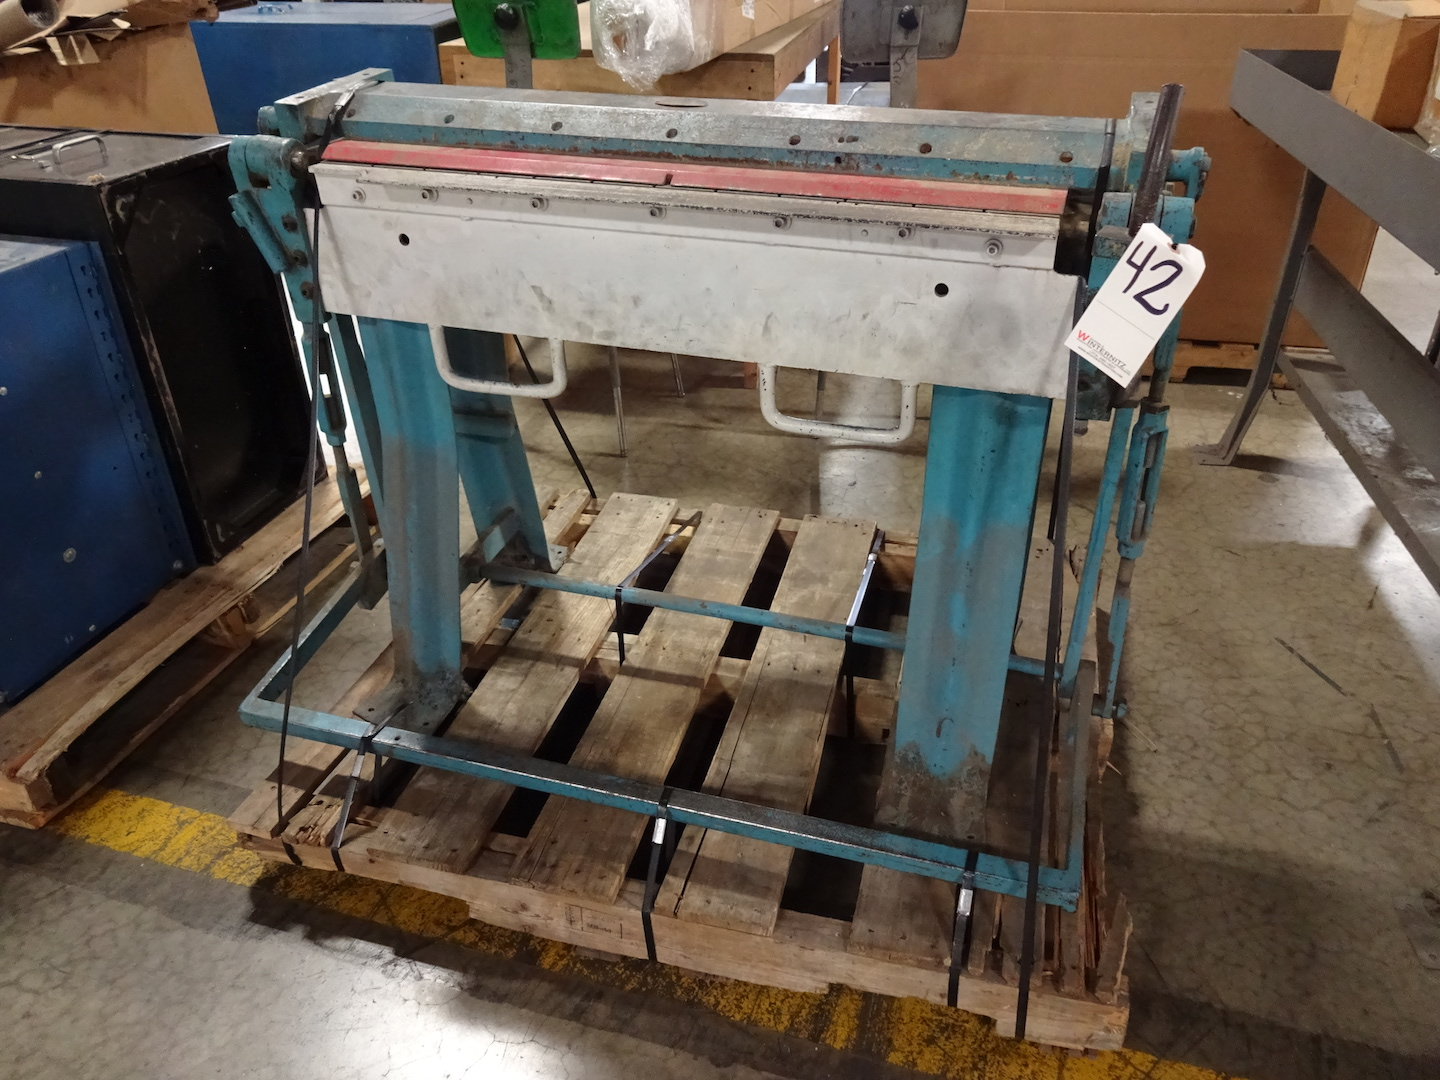 Chicago 36 in. Size 25 Bending Brake, S/N 89722